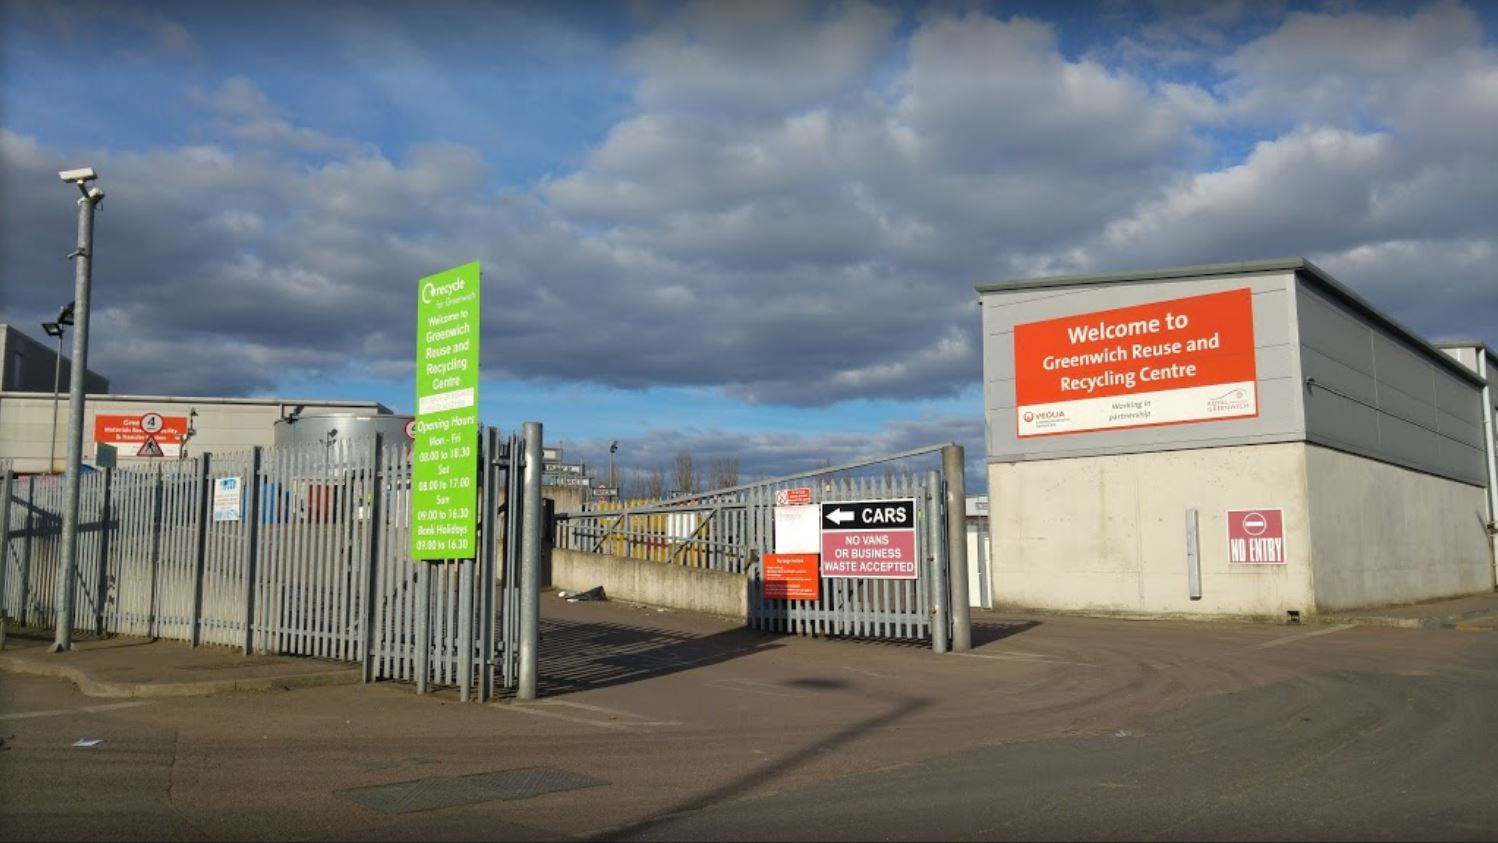 Greenwich Reuse and Recycling Centre, Thamesmead